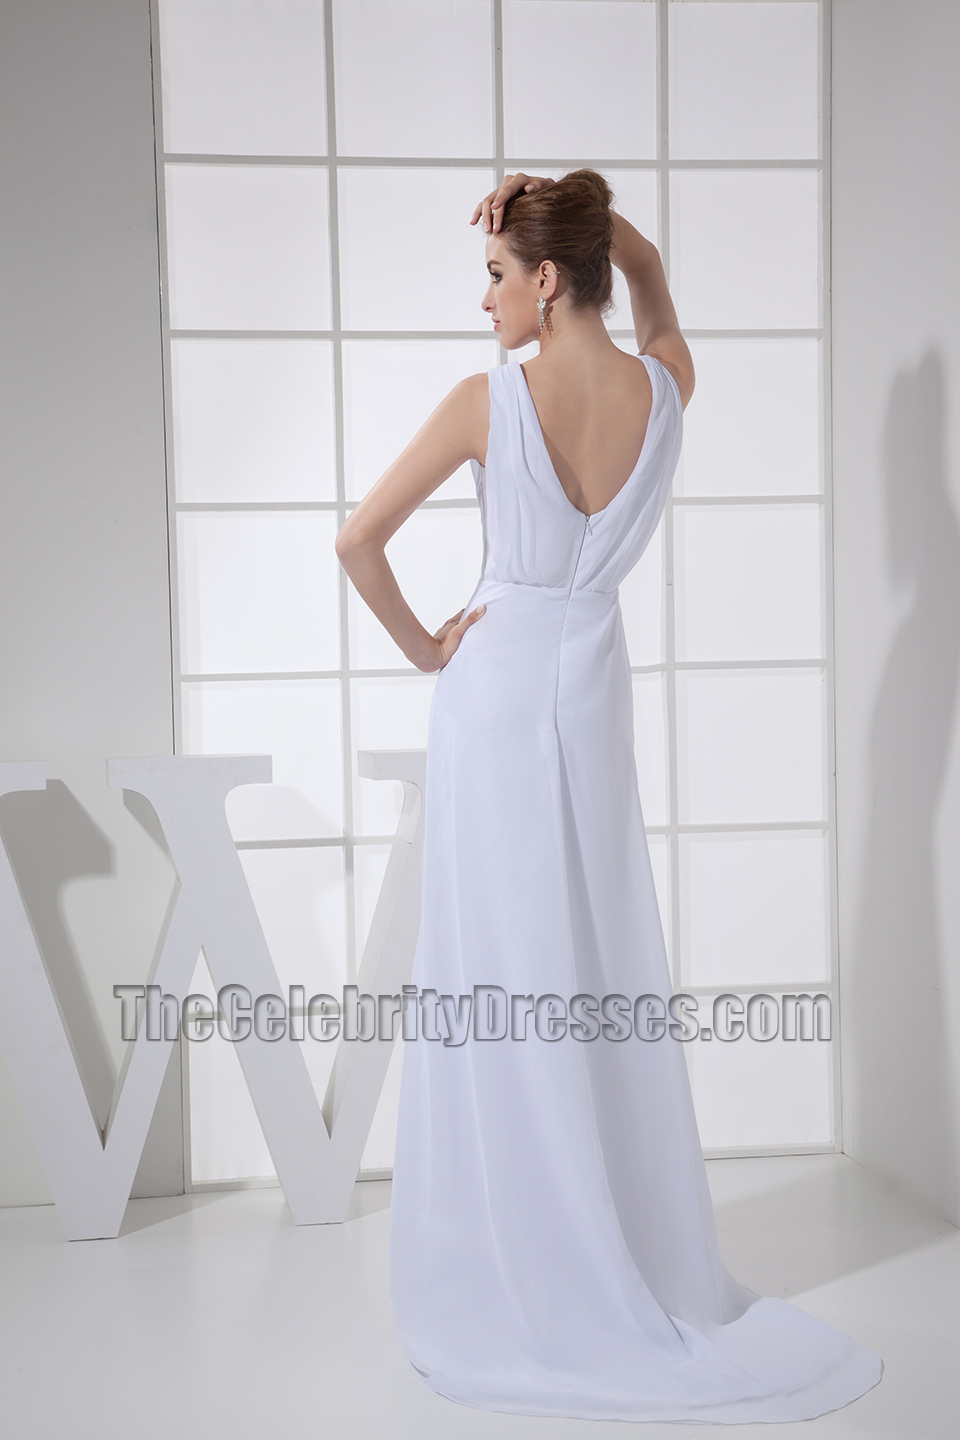 Simple White Chiffon Prom Dress Evening Formal Dresses ...